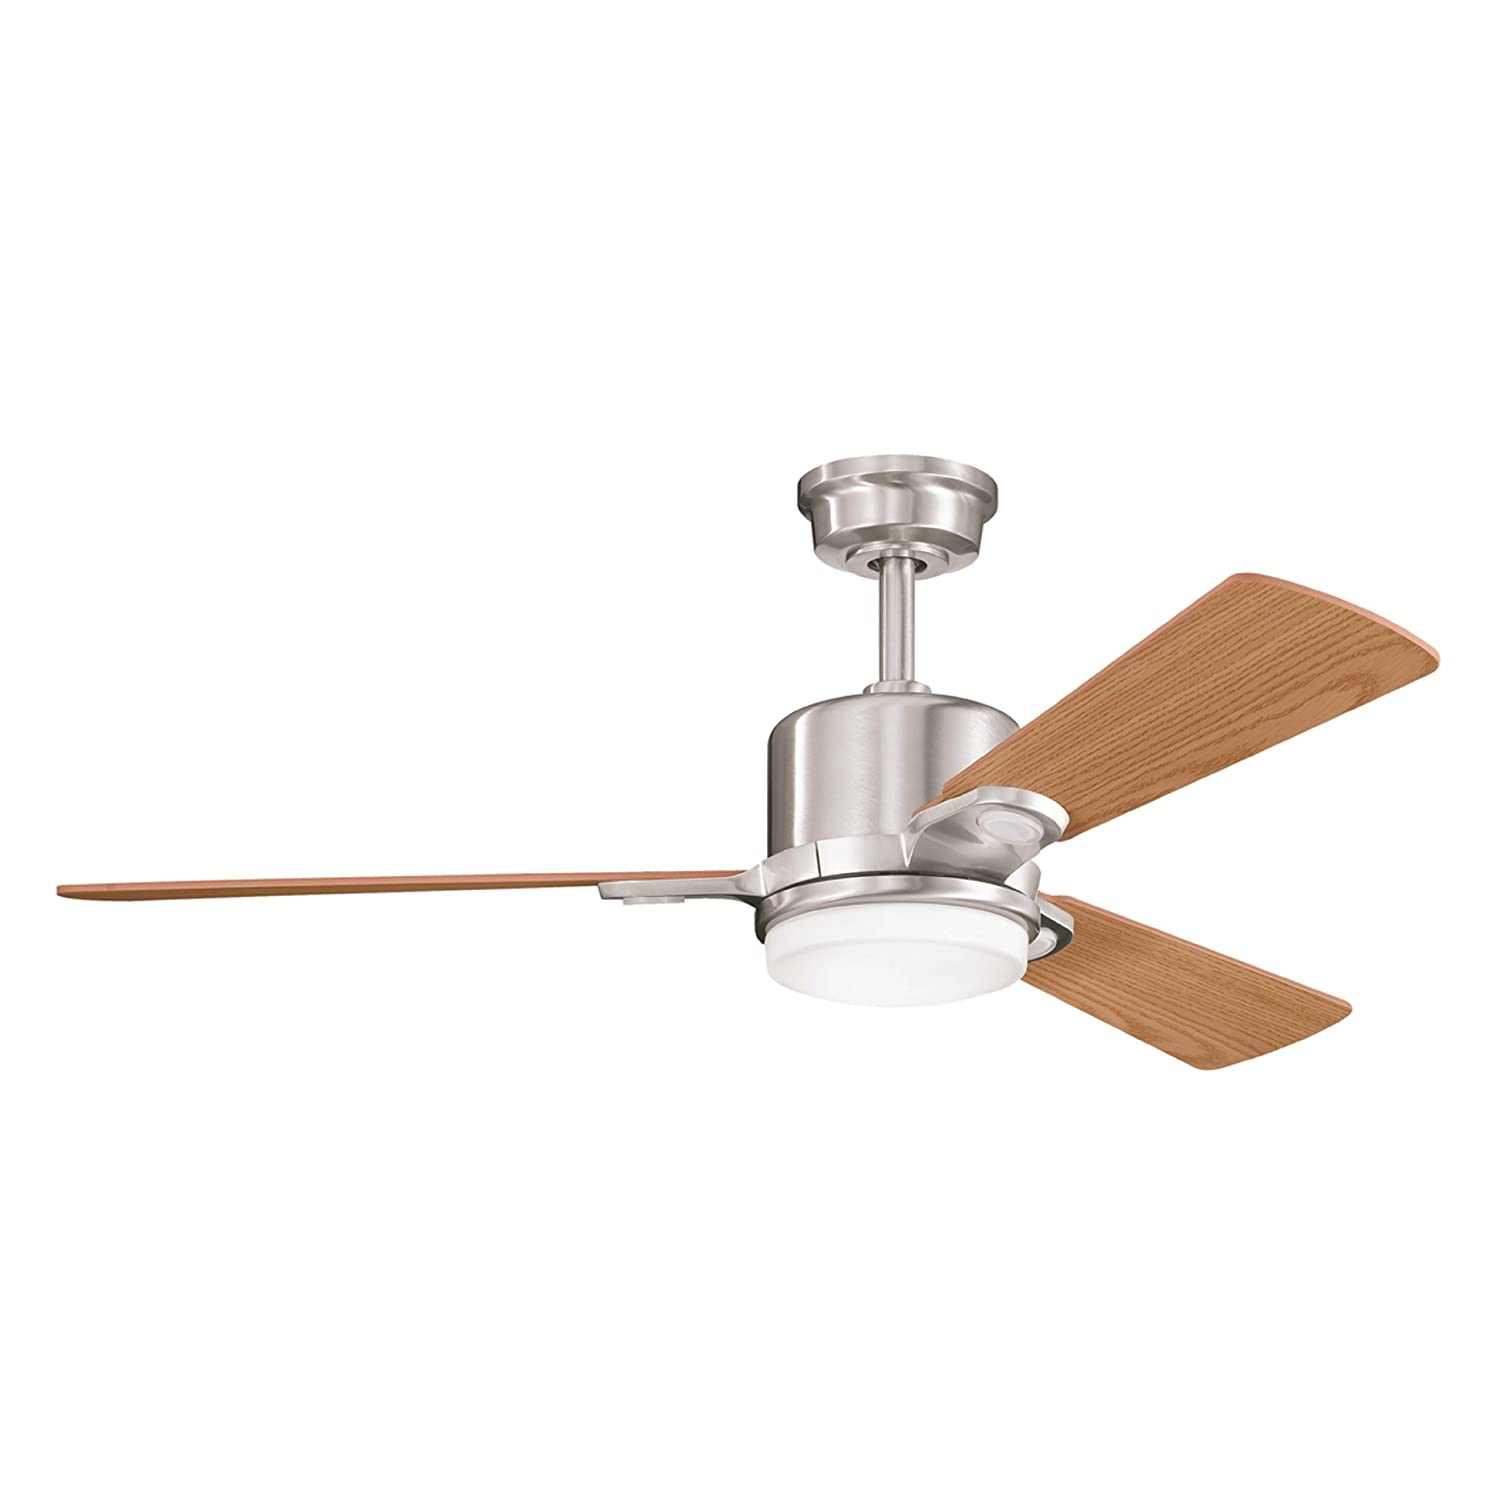 Kichler Lighting BSS Celino 48IN Ceiling Fan Brushed